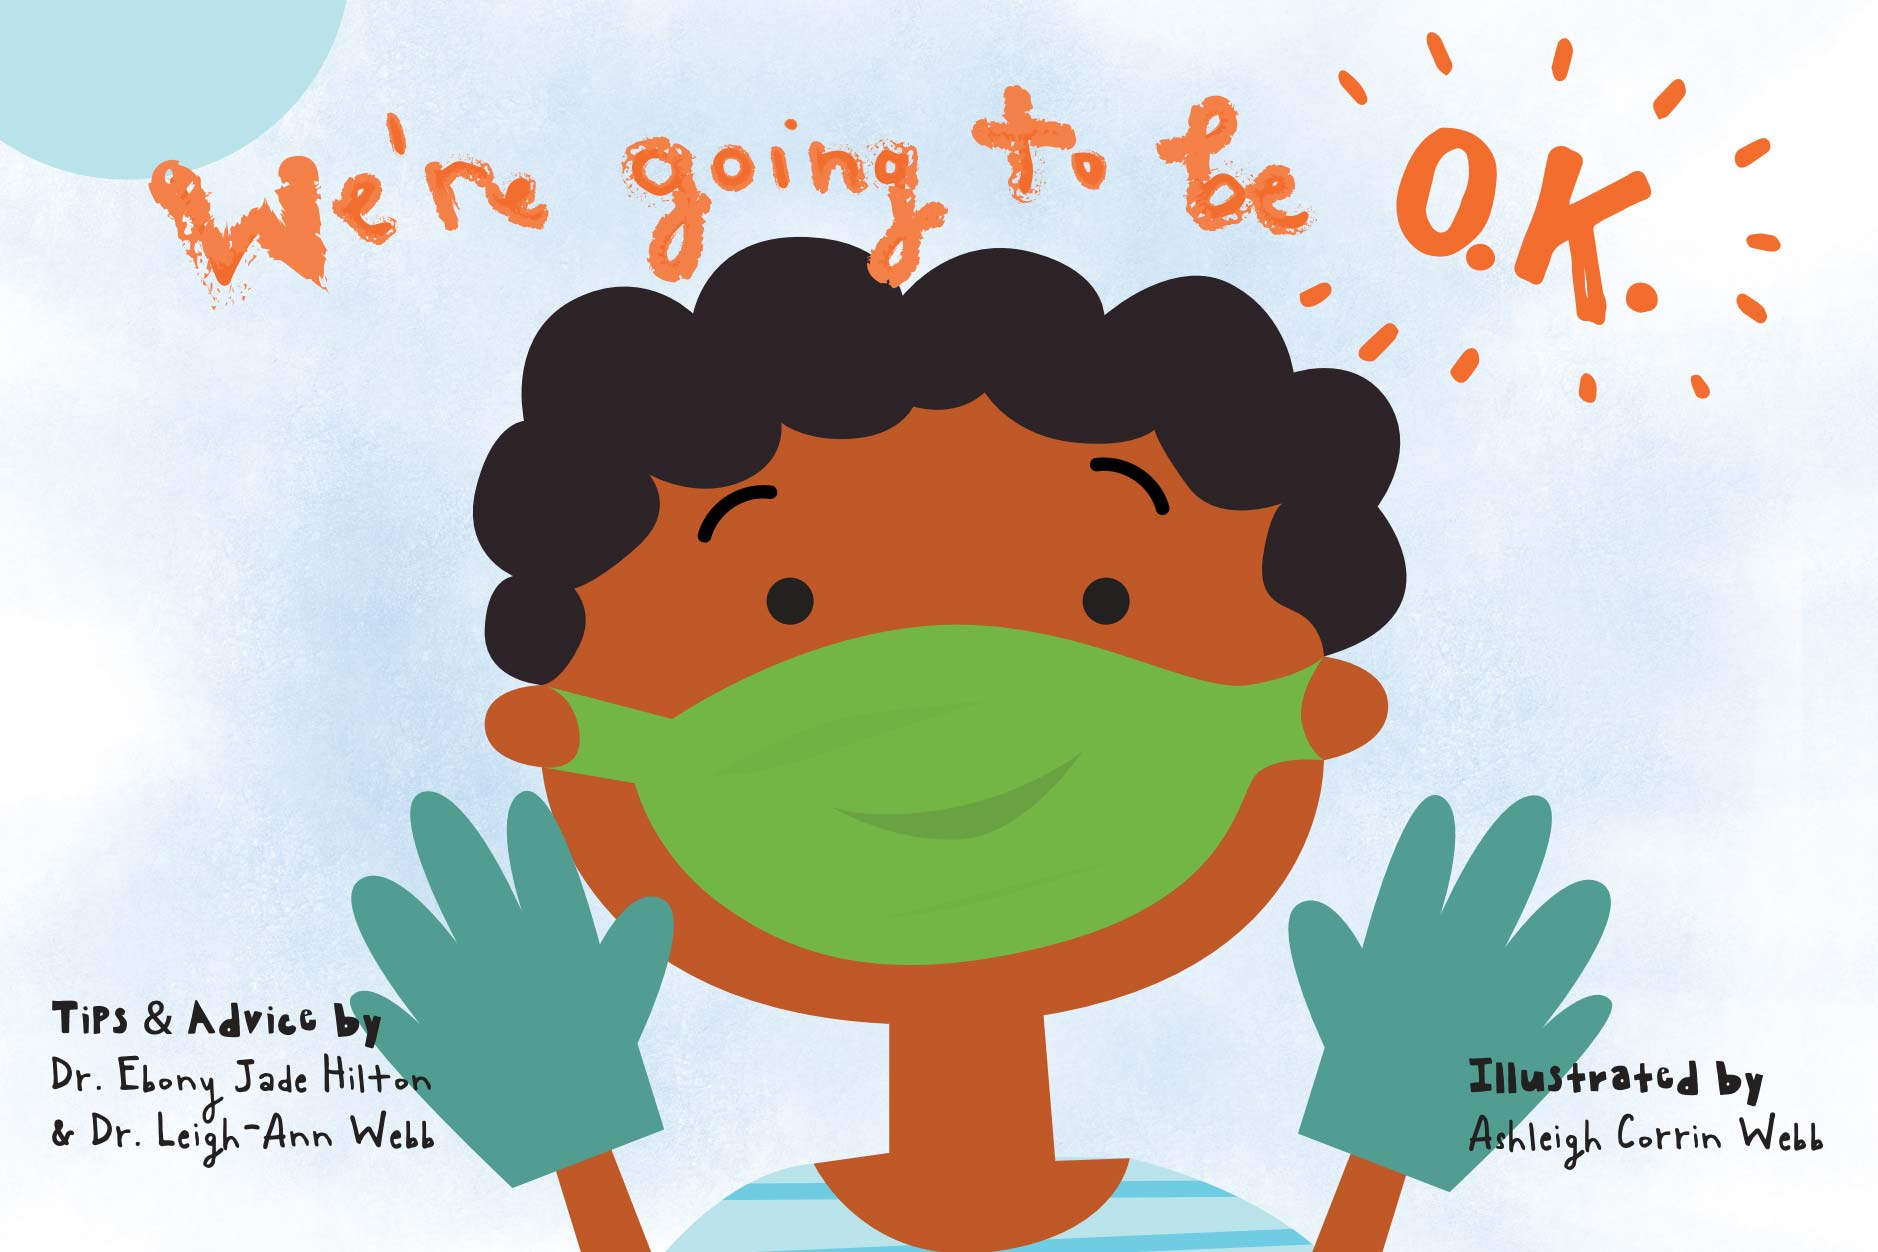 """We're Going to Be O.K.,"" tips and advice by Dr. Ebony Jade Hilton and Dr. Leigh-Ann Webb, illustrated by Ashleigh Corrin Webb."